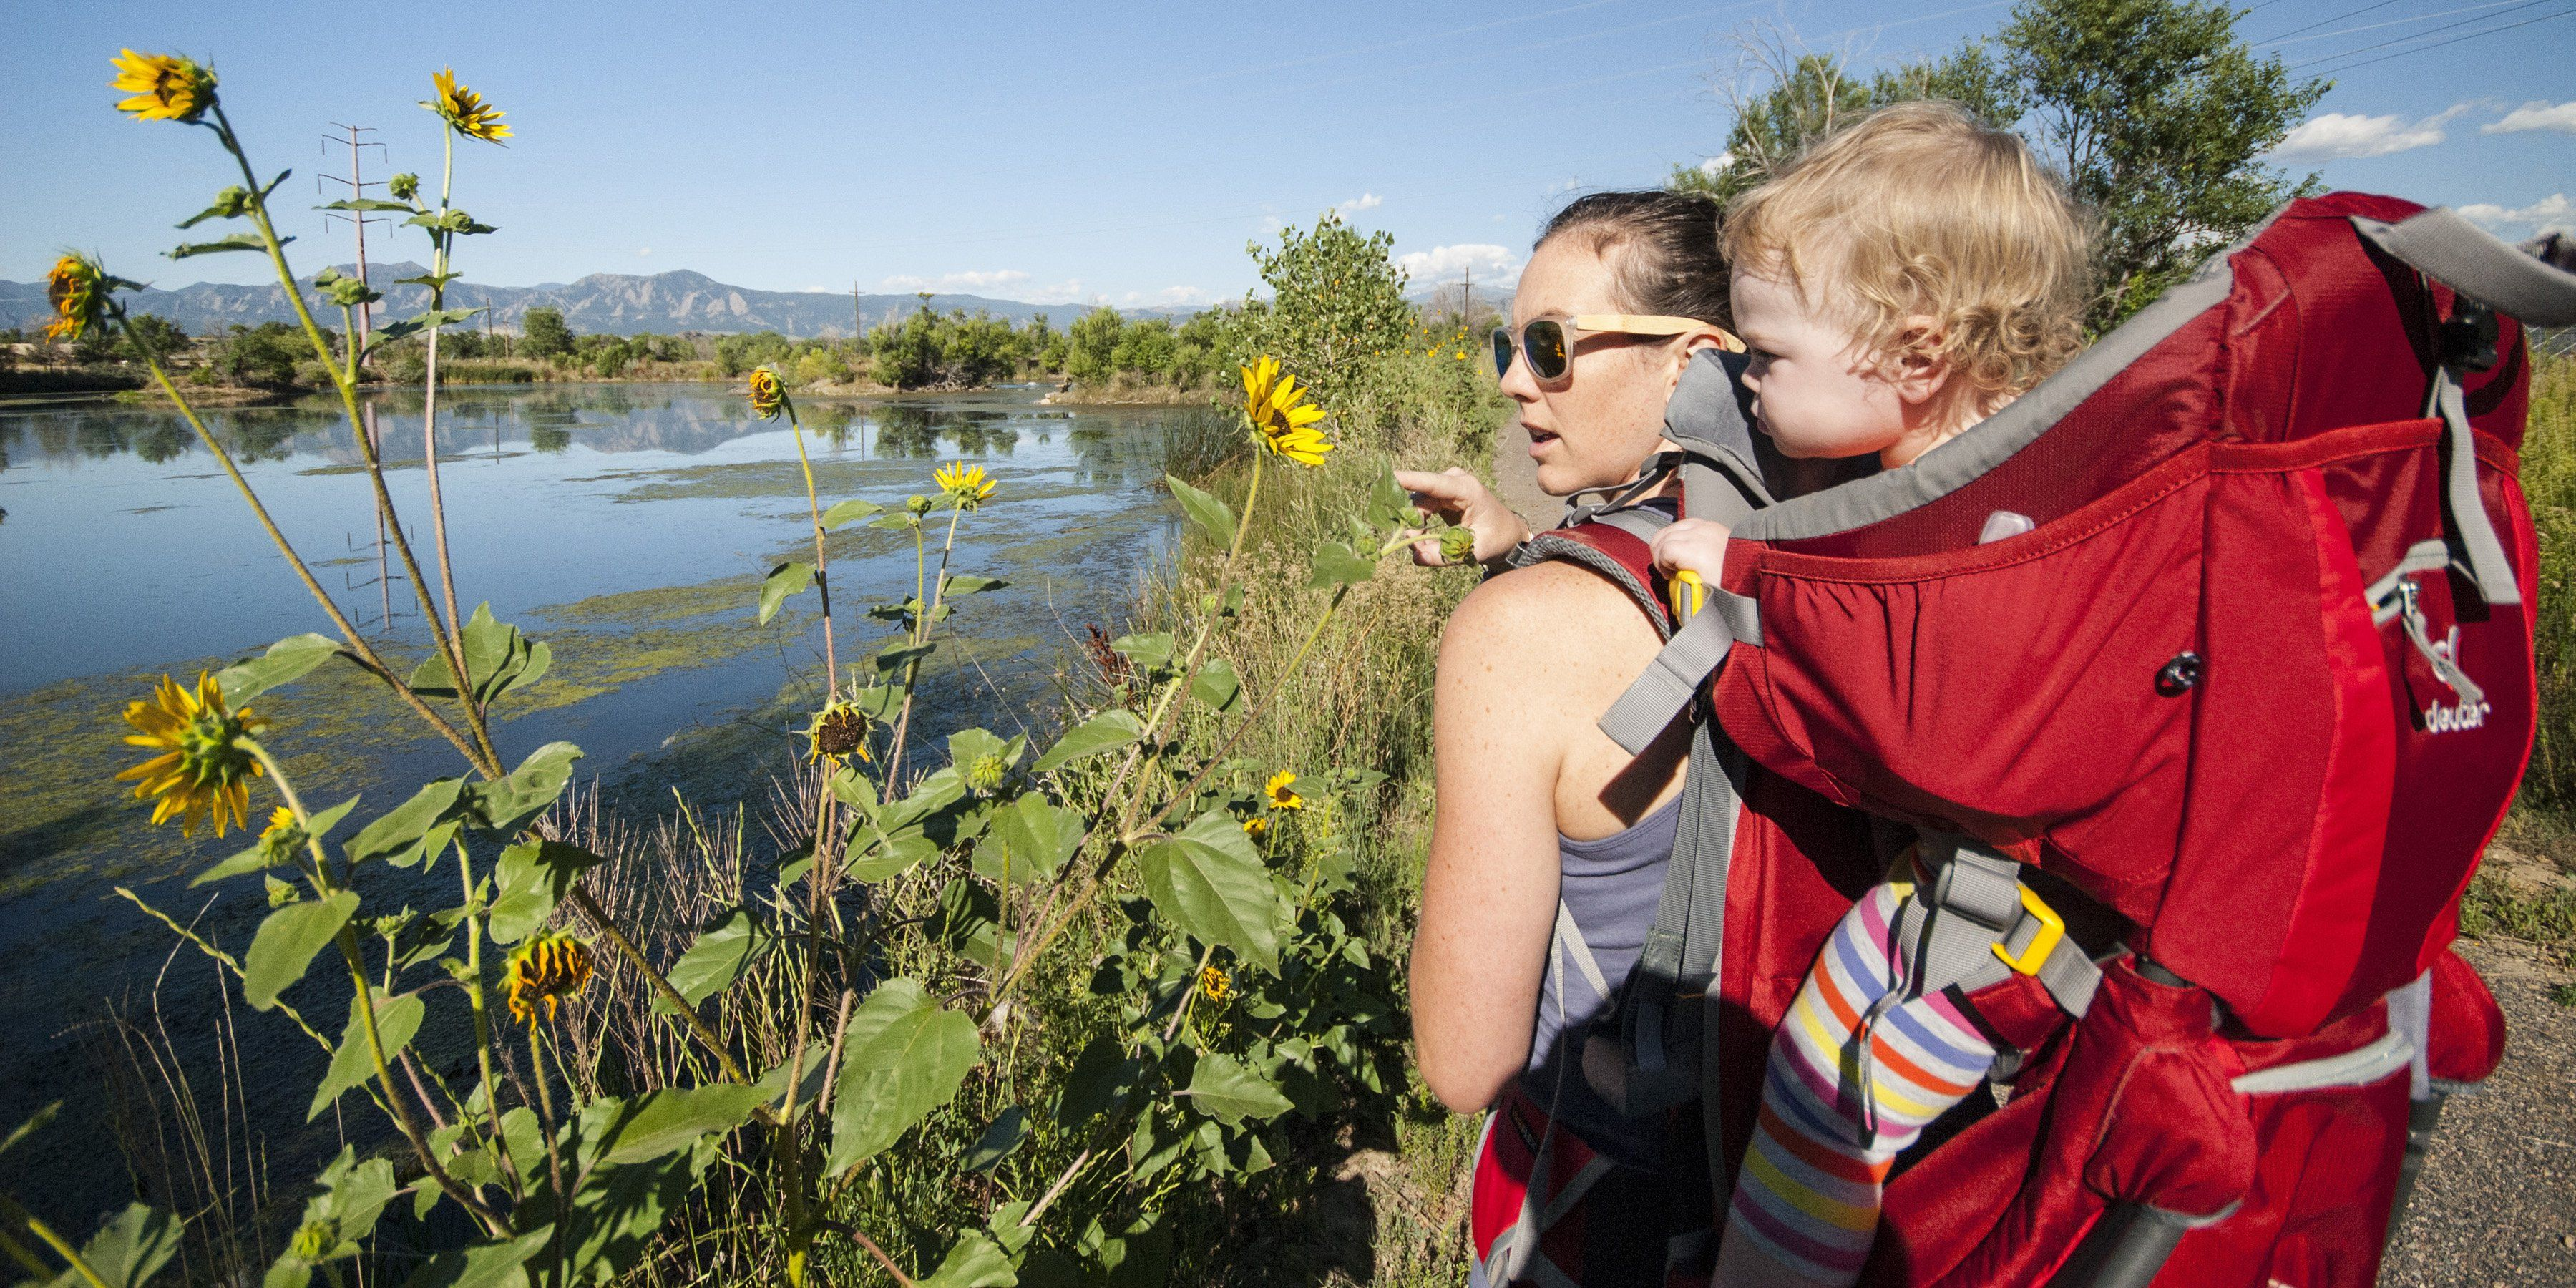 How To Teach Your Kids To Love Nature